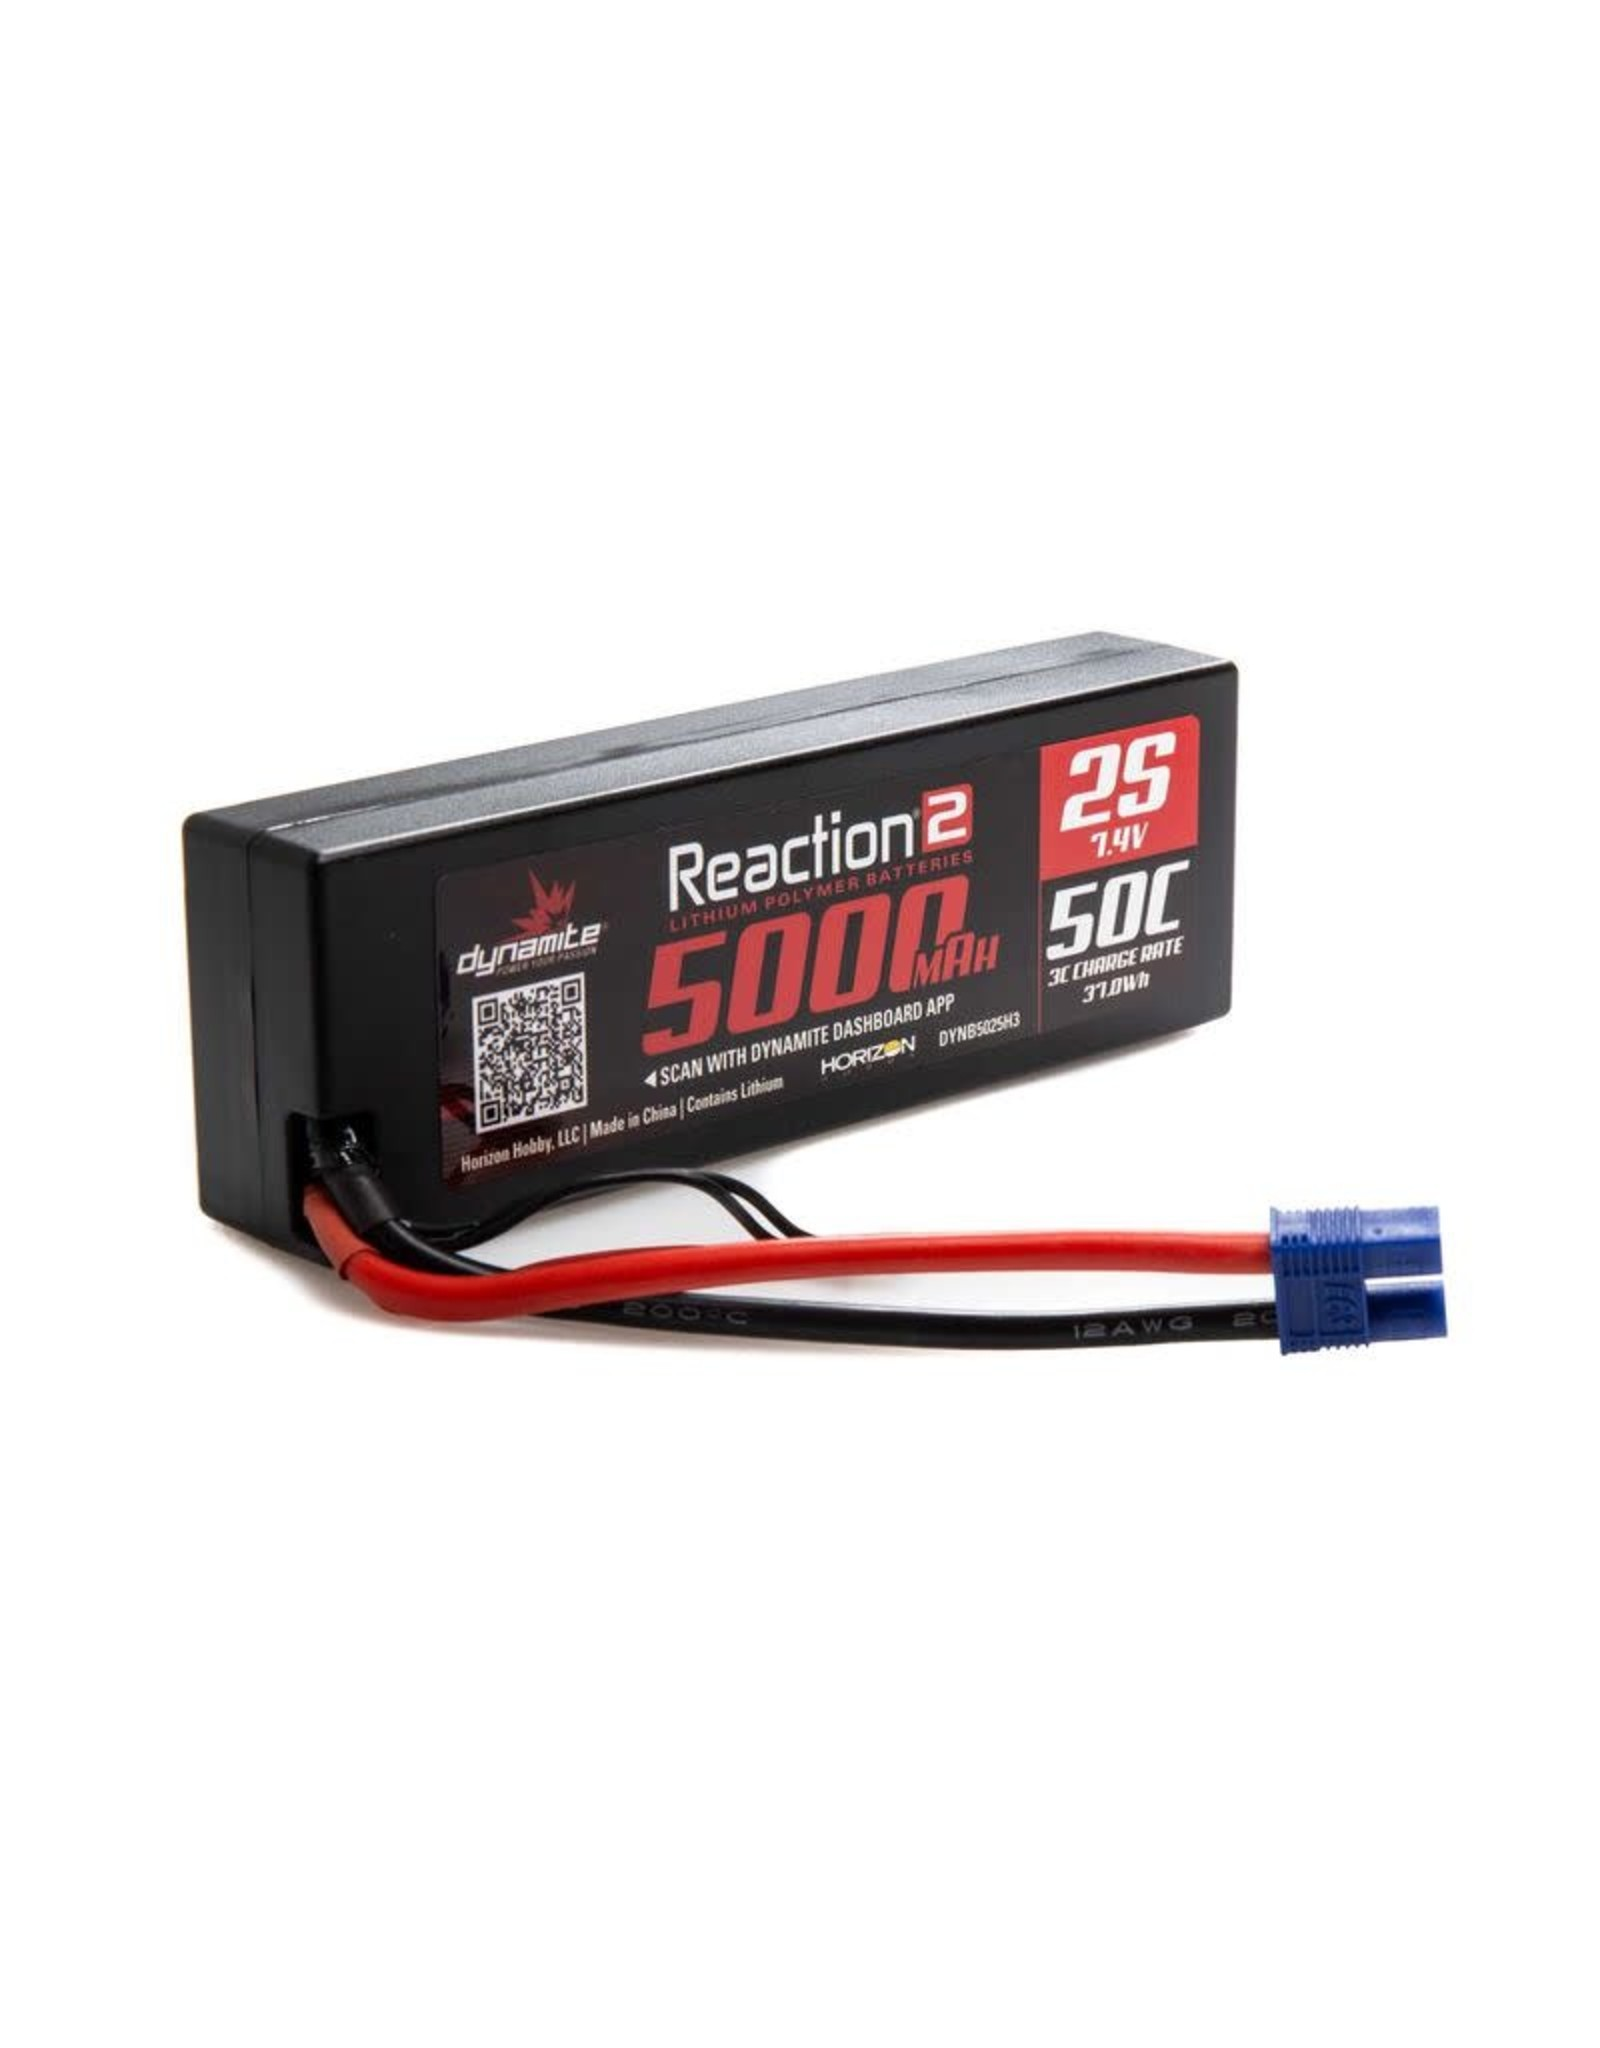 Reaction 2 Reaction 7.4  5000 Mah2s 50C LIpo Hrdcs EC3